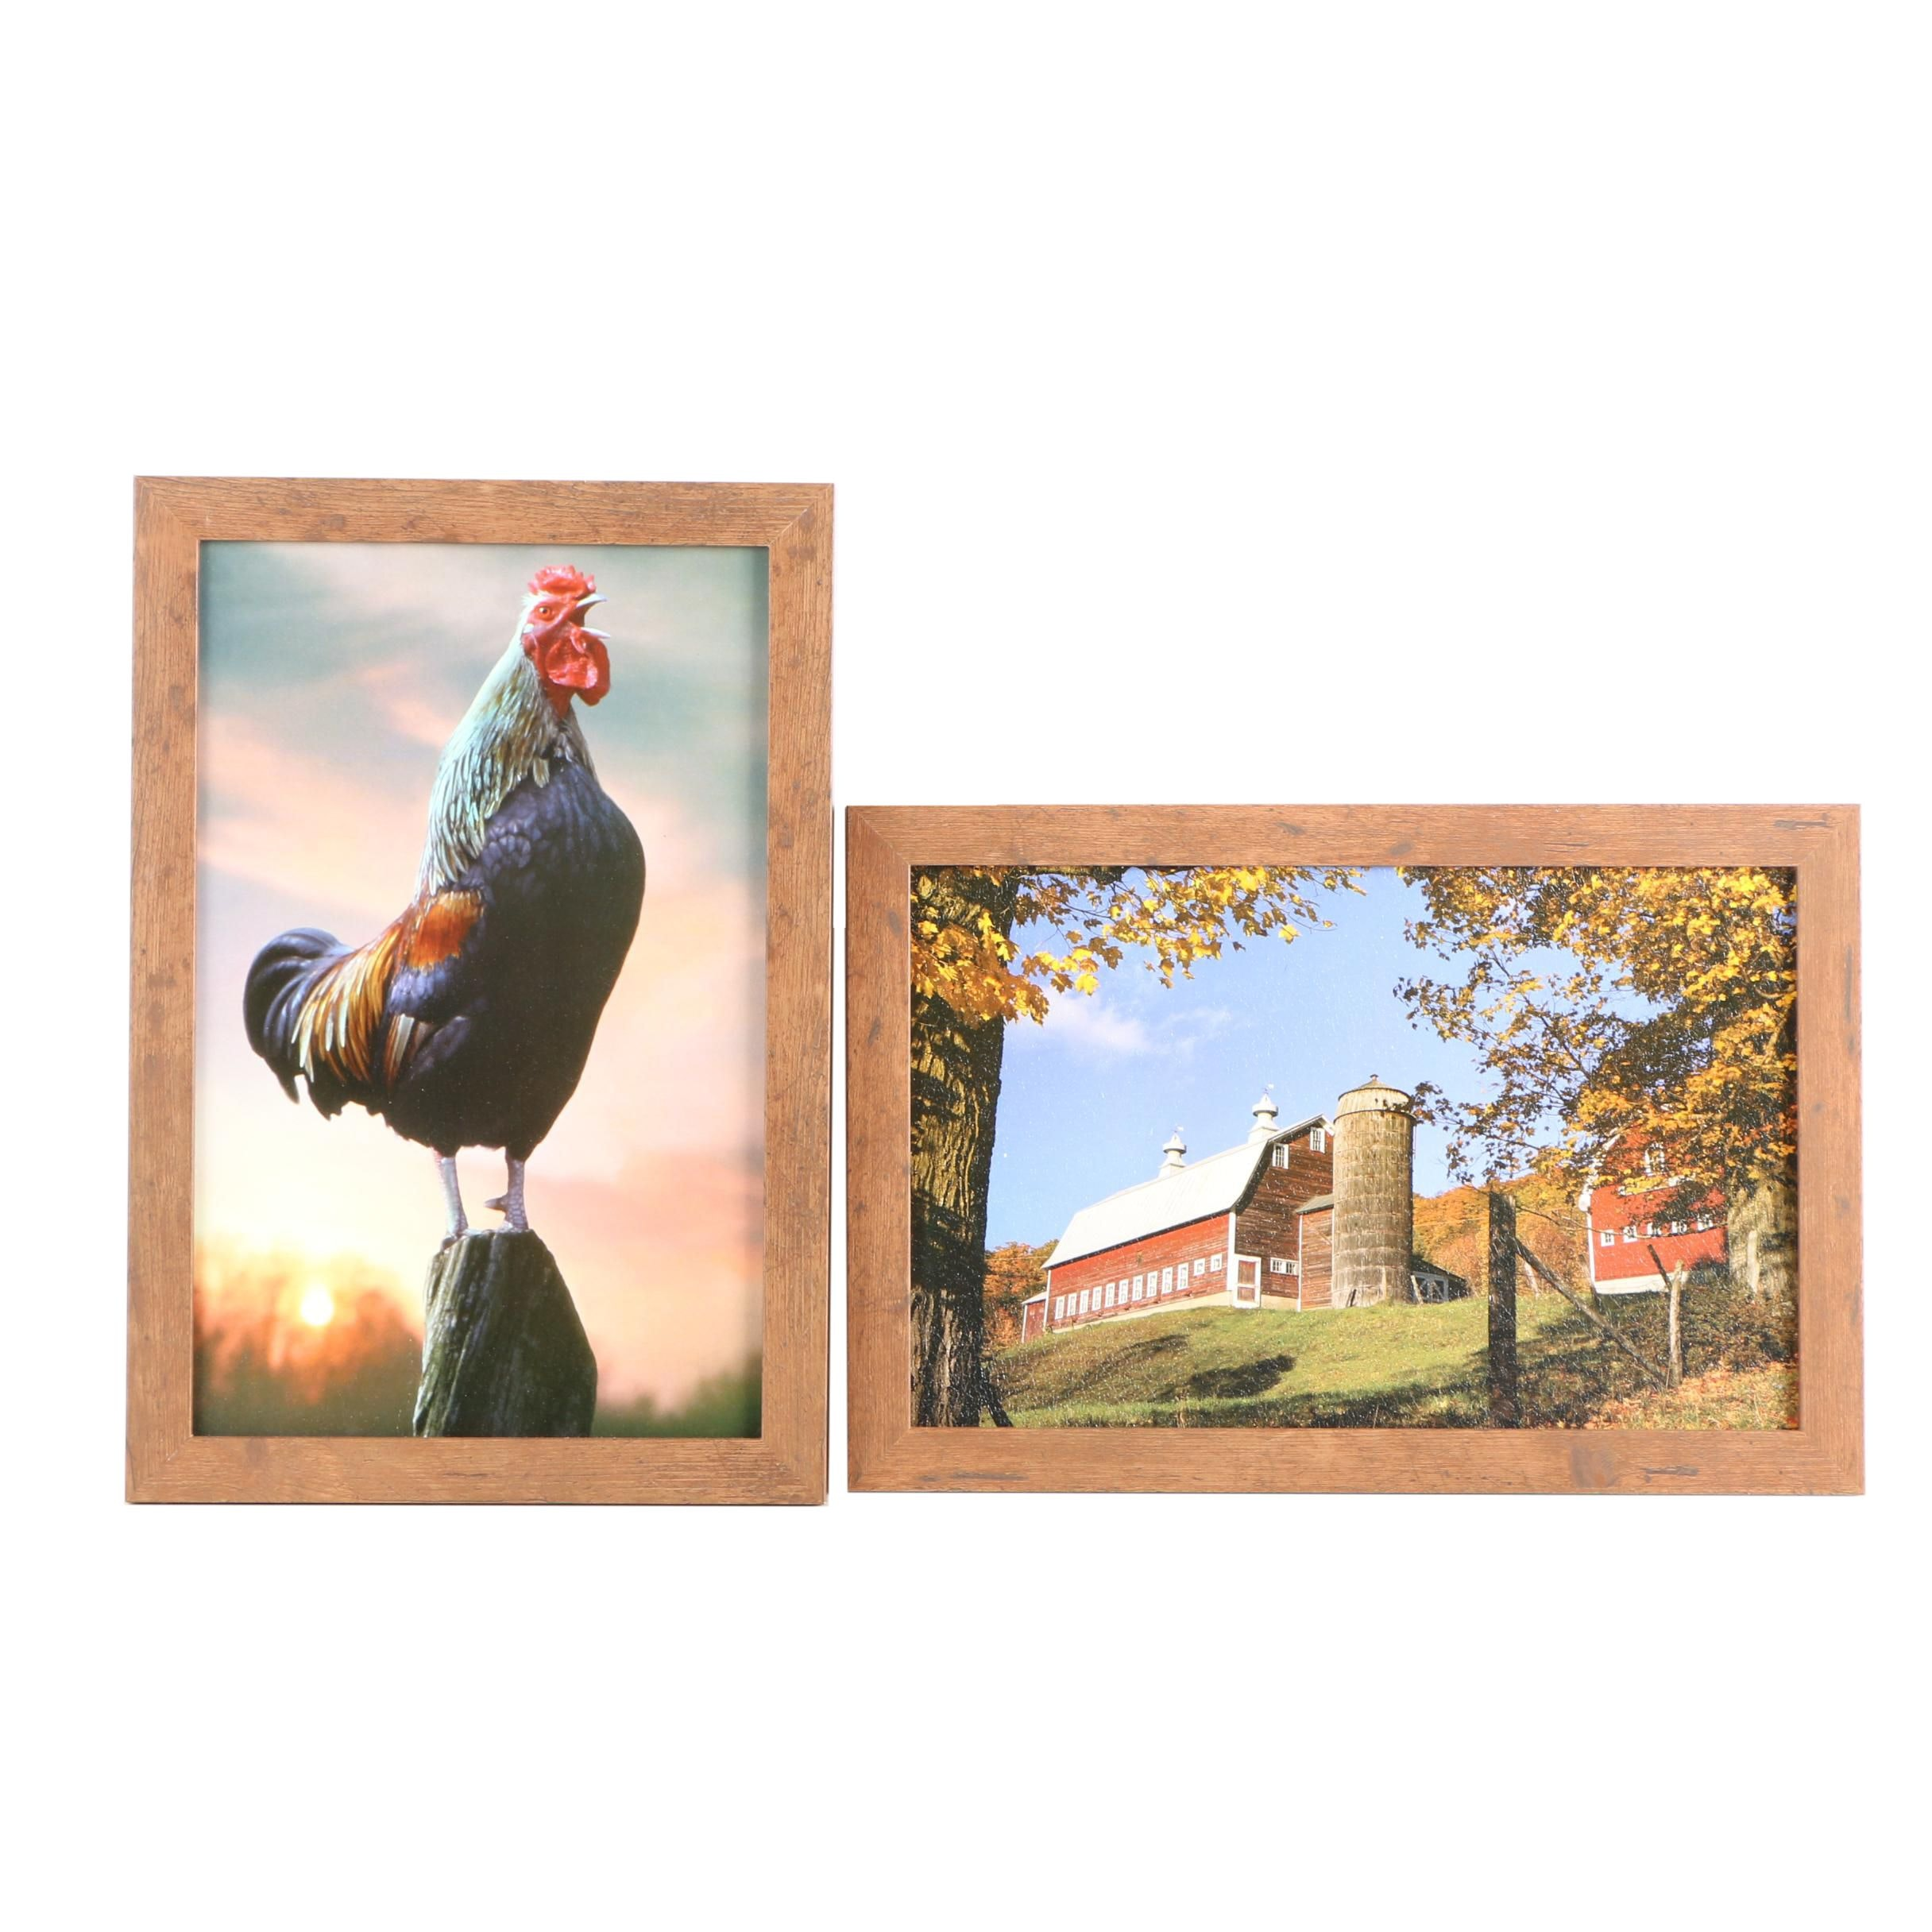 Offset Lithographs After Photographs of Farm Life